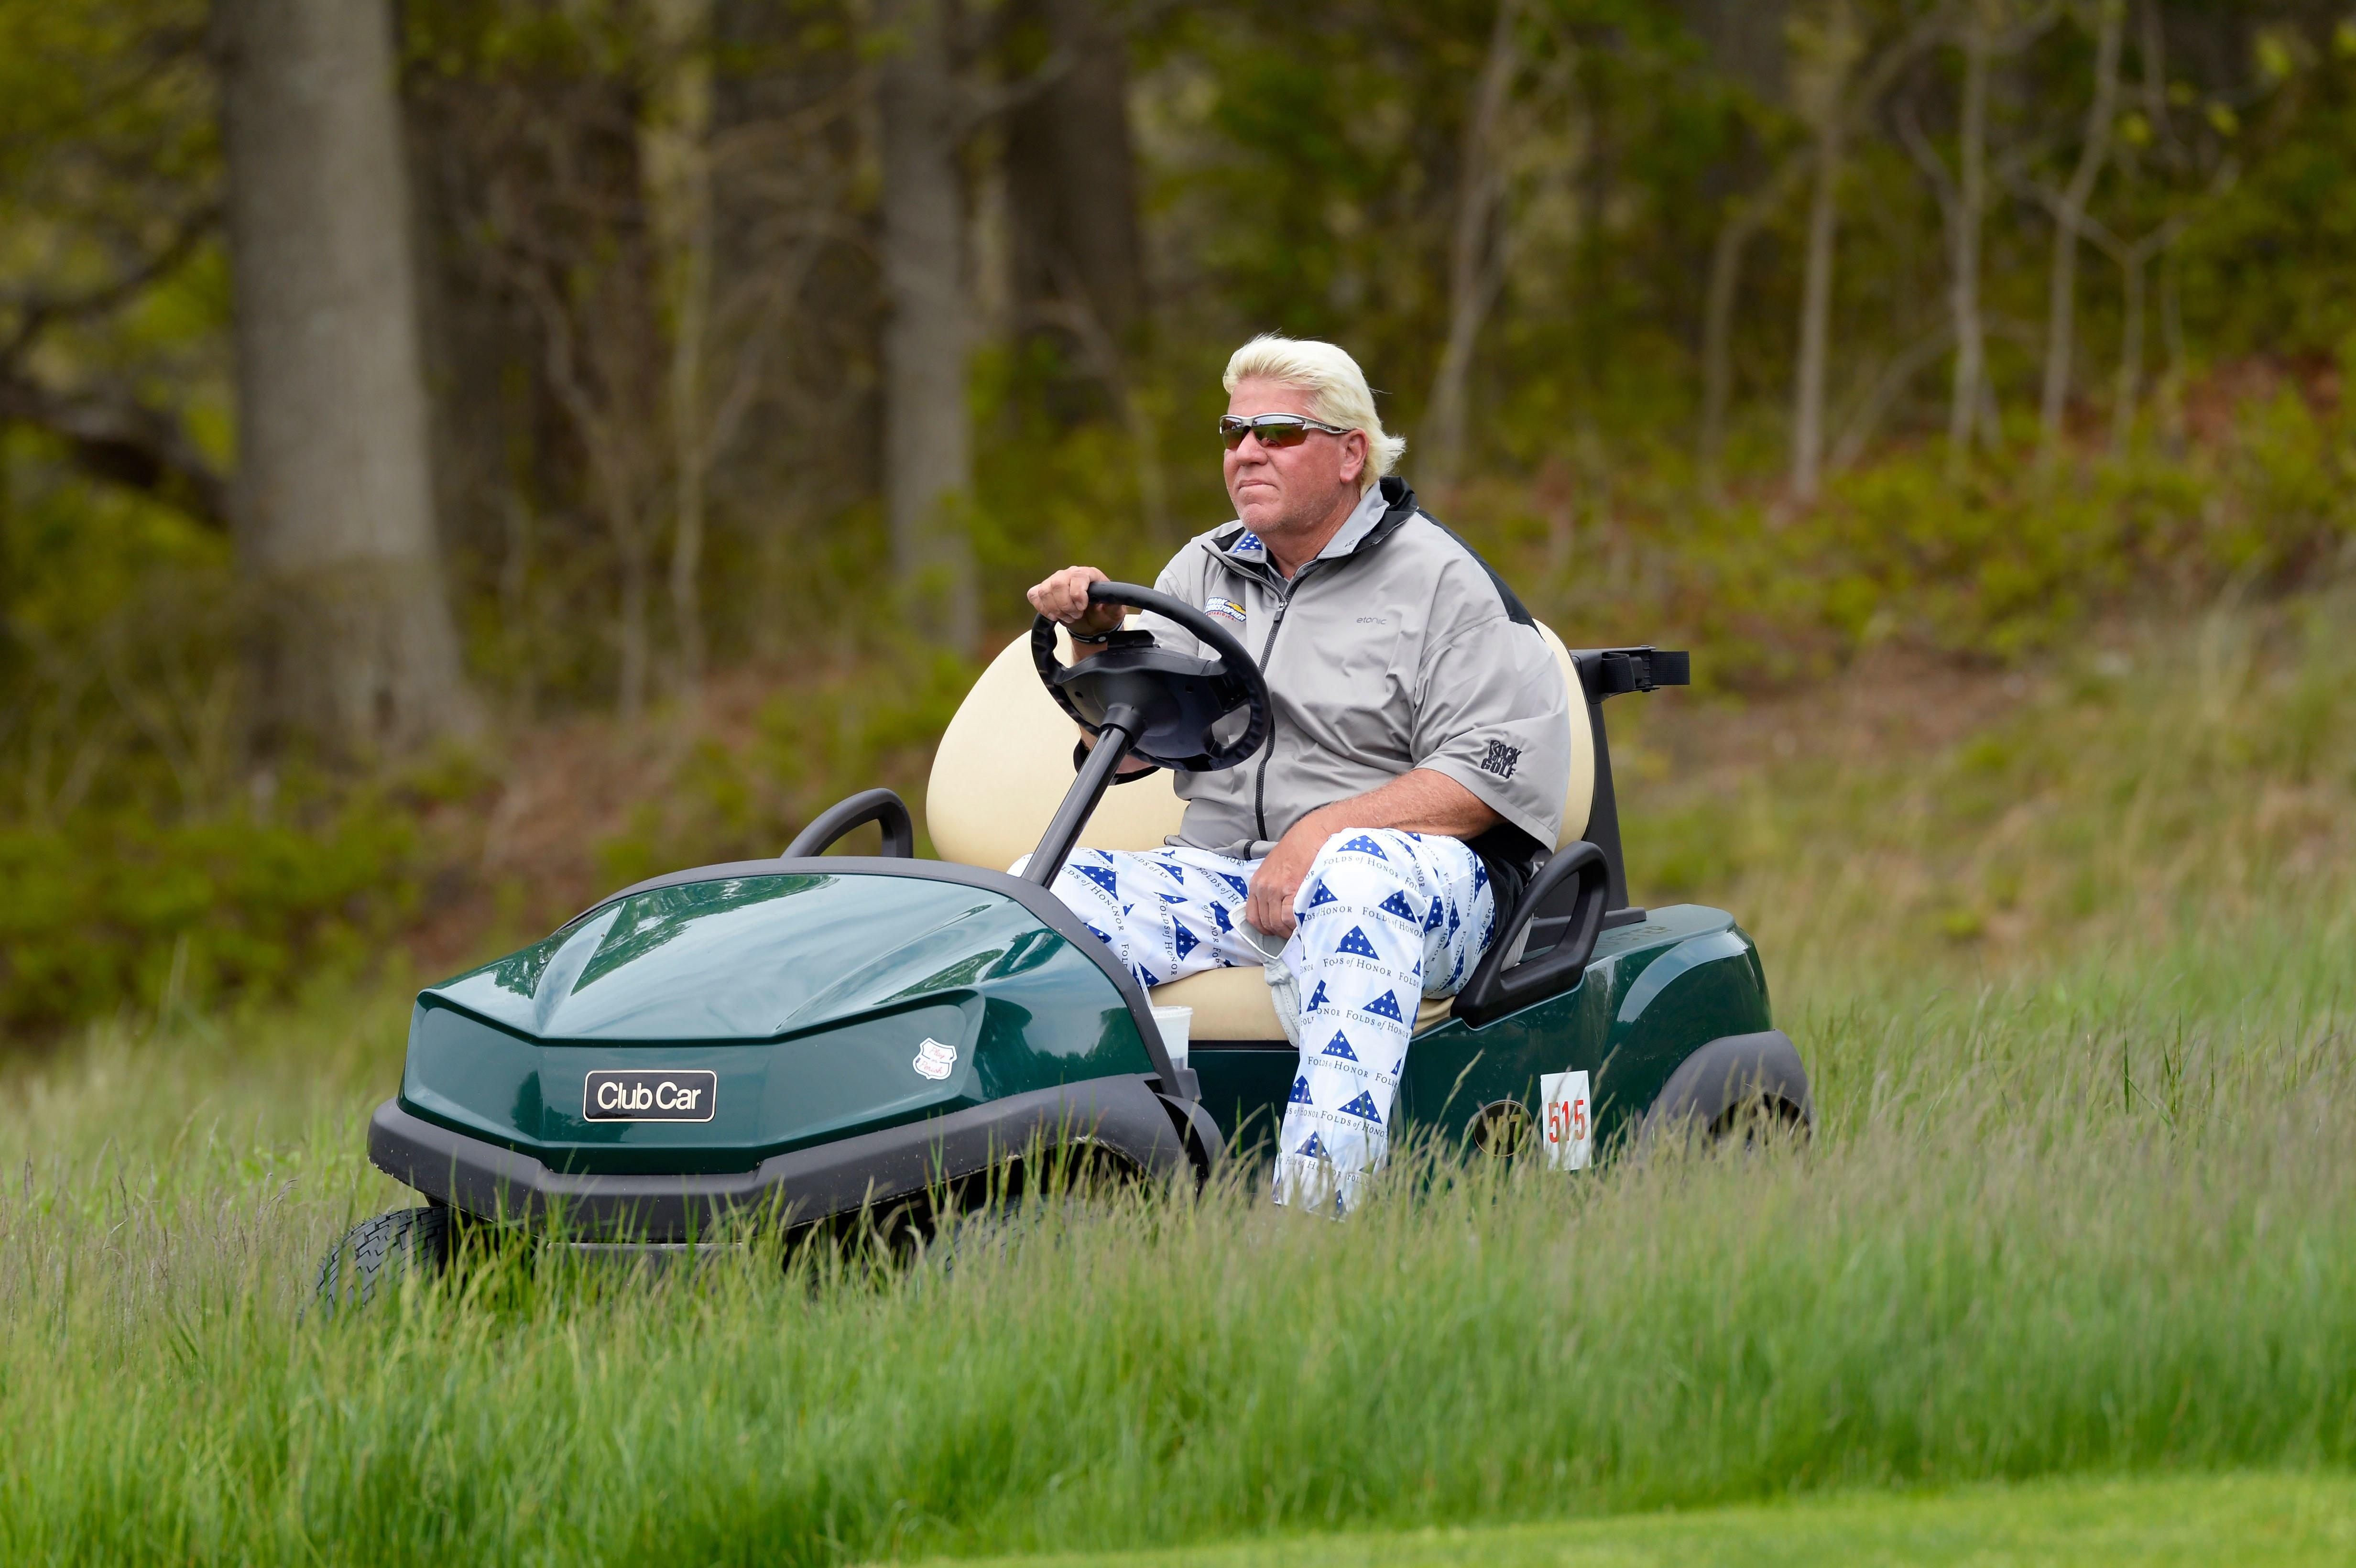 John Daly, upset his request to use cart at Open Championship was denied, plans to play Royal Portrush anyway